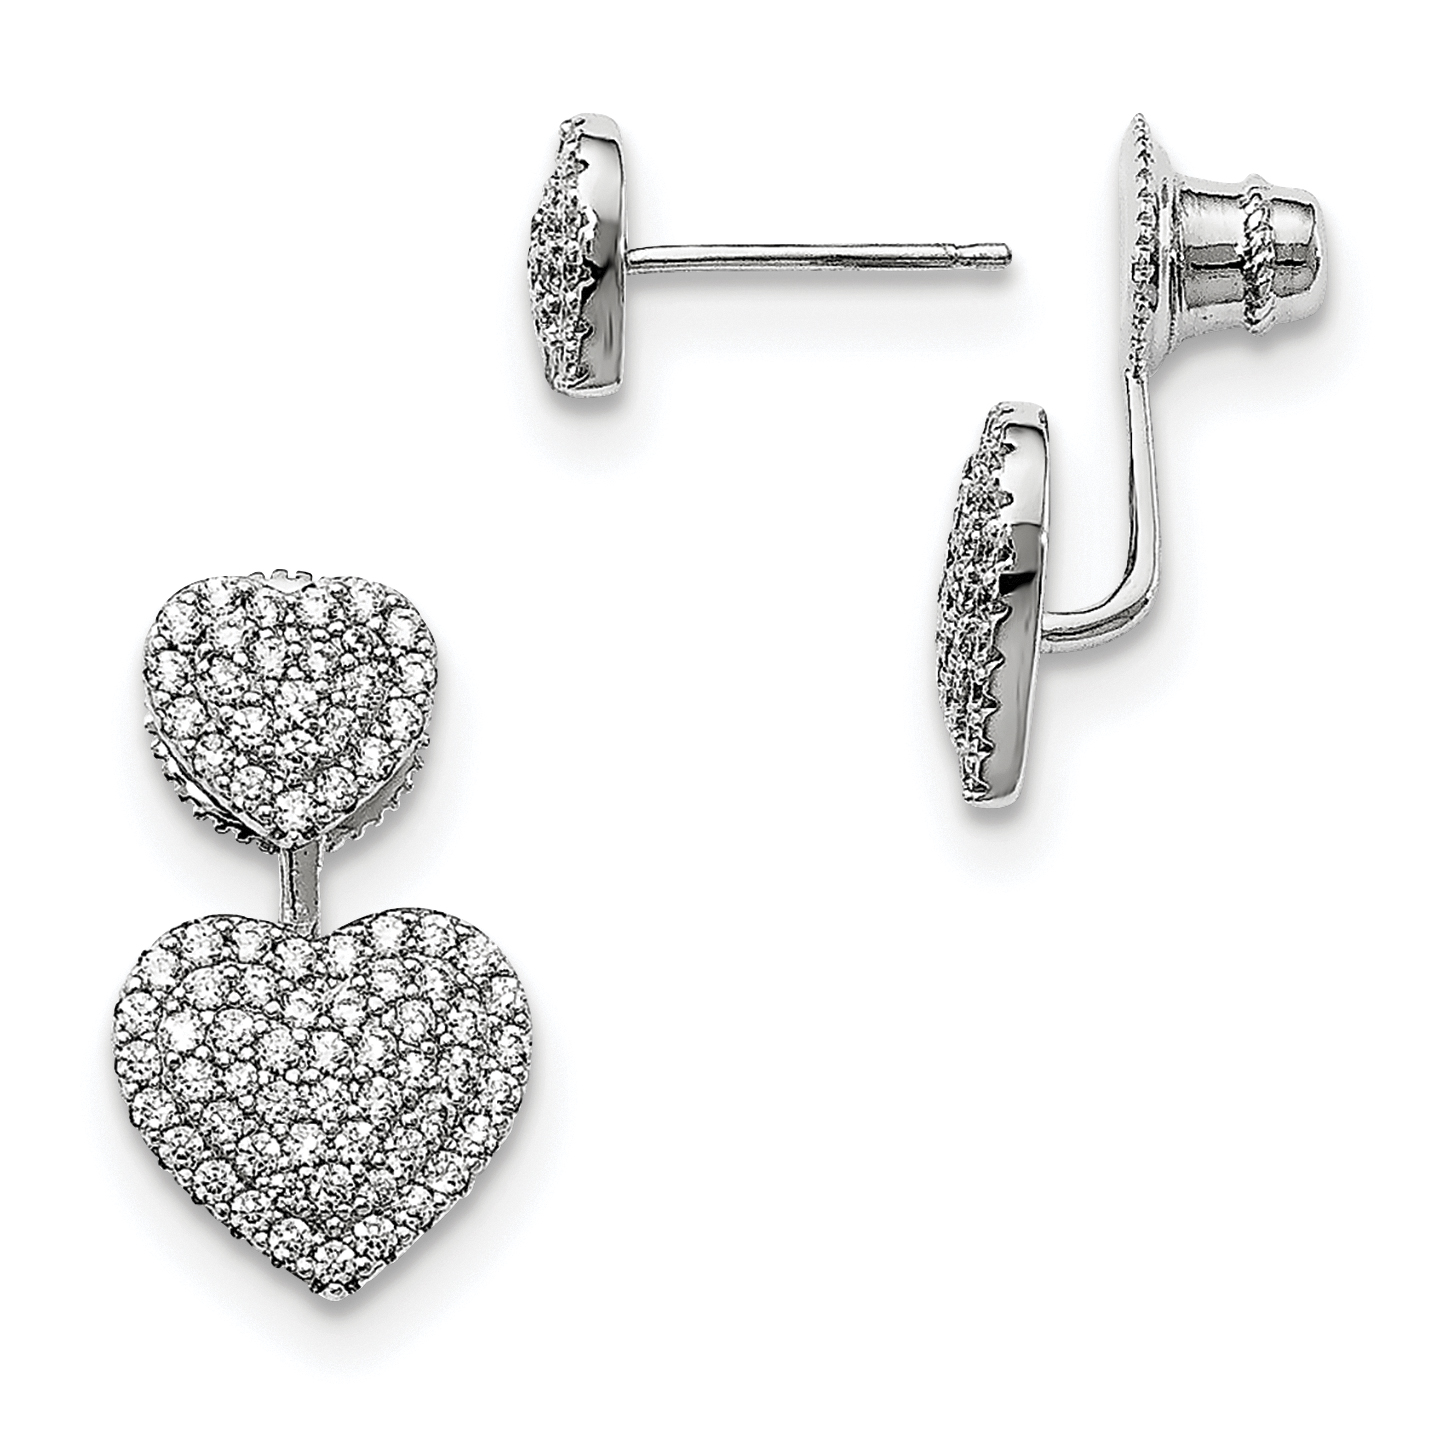 ICE CARATS 925 Sterling Silver Cubic Zirconia Cz Hearts Post Stud Earrings Drop Dangle Love Fine Jewelry Ideal Gifts For Women Gift Set From Heart